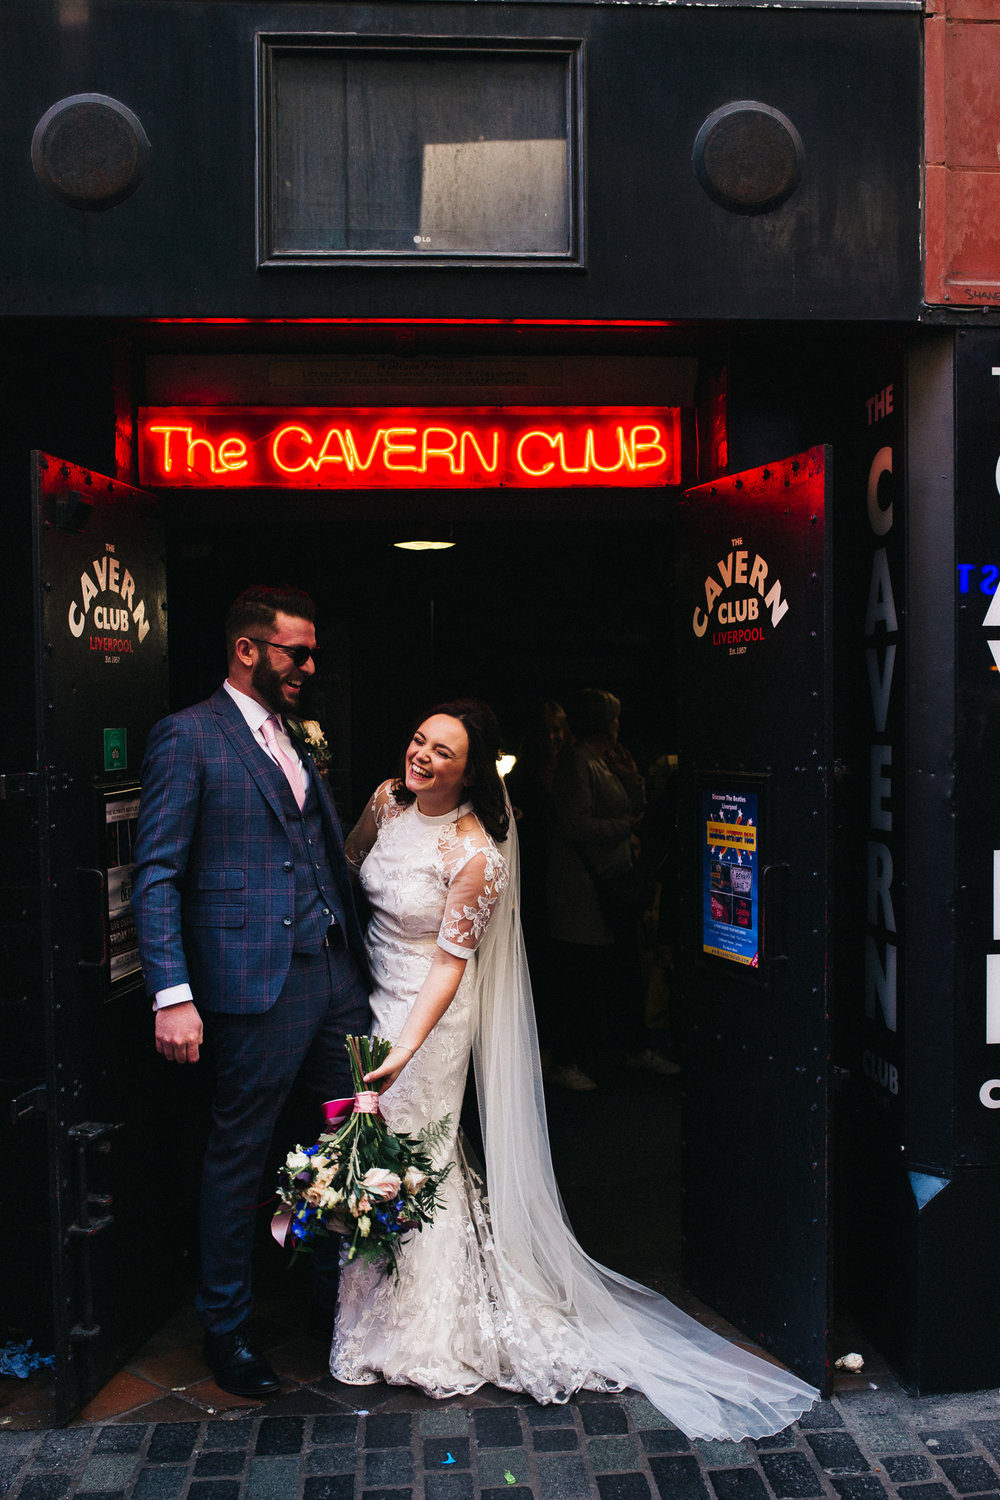 the bride and groom laugh together under the entrance to the cavern club in liverpool. ceremony at st georges hall liverpool, oh me oh my wedding reception, north west wedding photographer